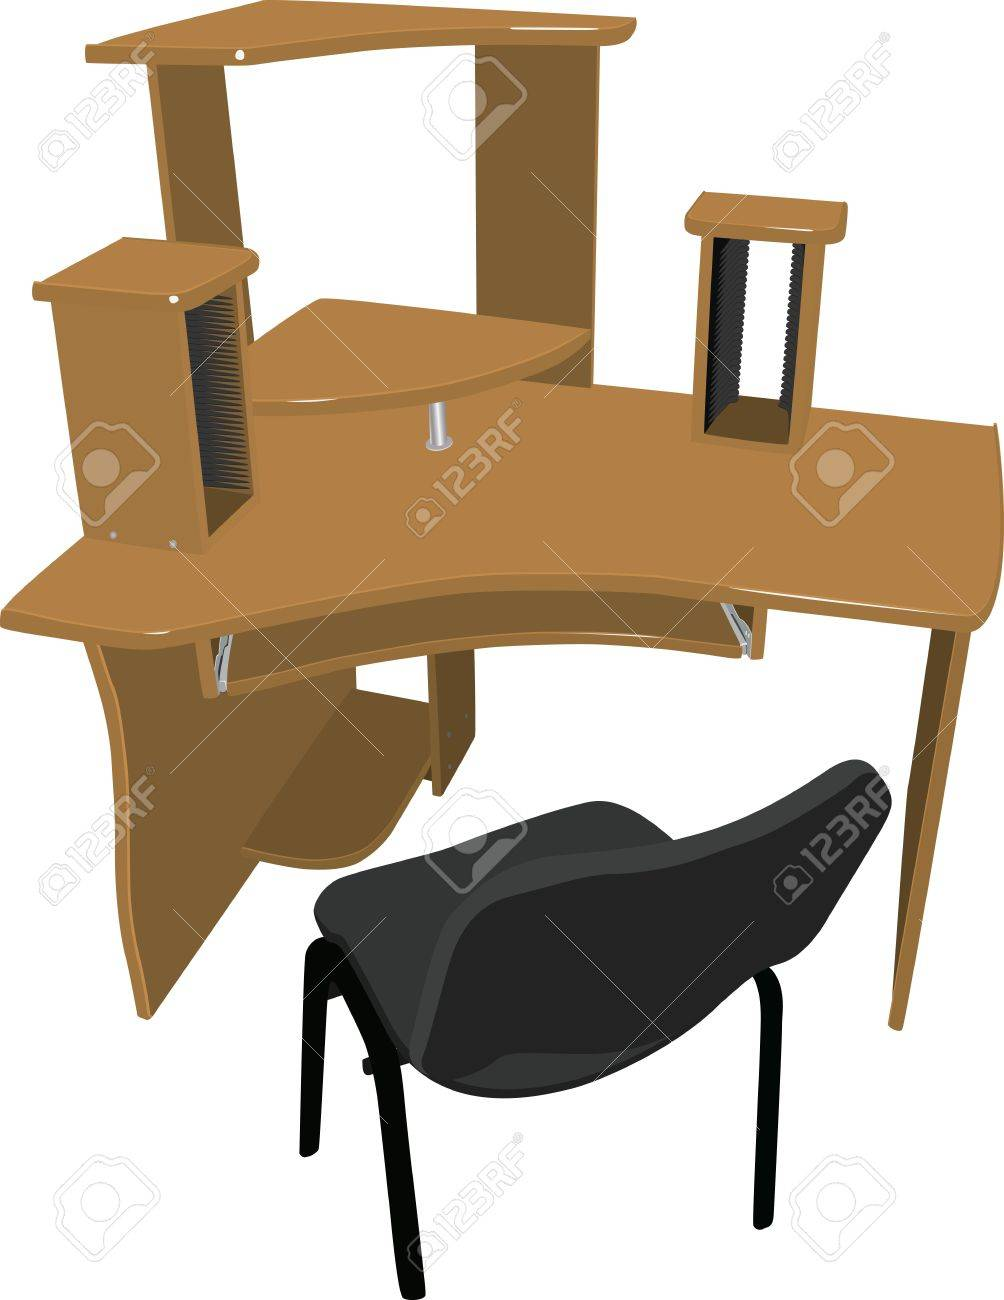 Convenient workplace for the house and office. A big table-top, a place for computer, monitor, printer and stereo speakers, shelf for DVD disks. Stock Vector - 13225556